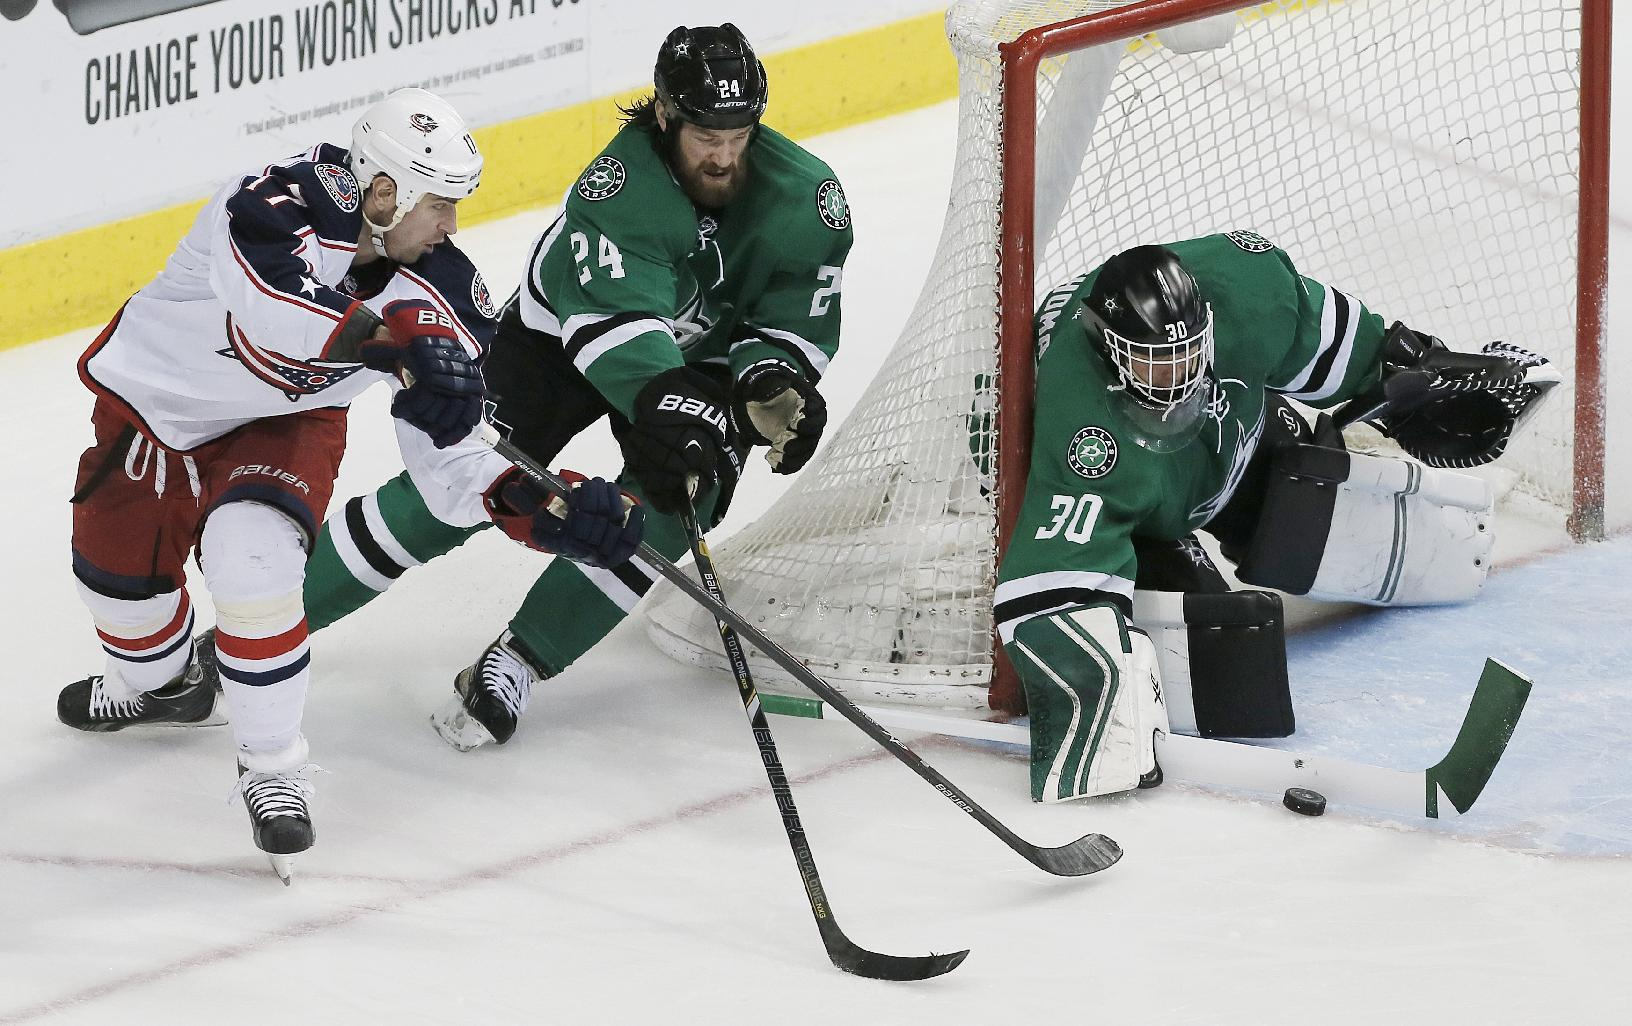 Columbus Blue Jackets center Brandon Dubinsky (17) attempts a backhanded shot as Dallas Stars defenseman Jordie Benn (24) and goalie Tim Thomas (30) defend during the second period of an NHL hockey game on Wednesday, April 9, 2014, in Dallas